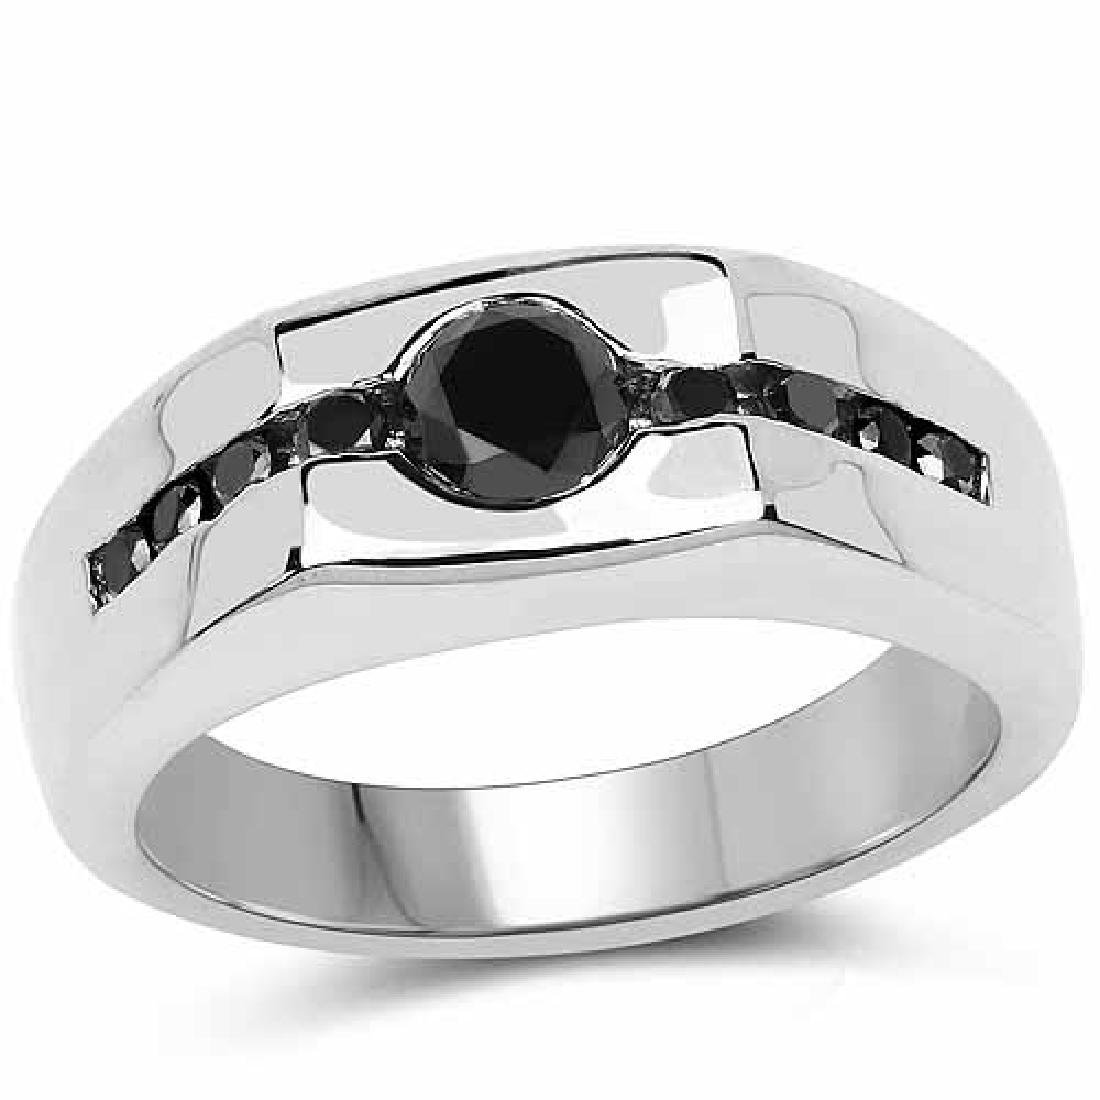 0.74 Carat Genuine Black Diamond .925 Sterling Silver R